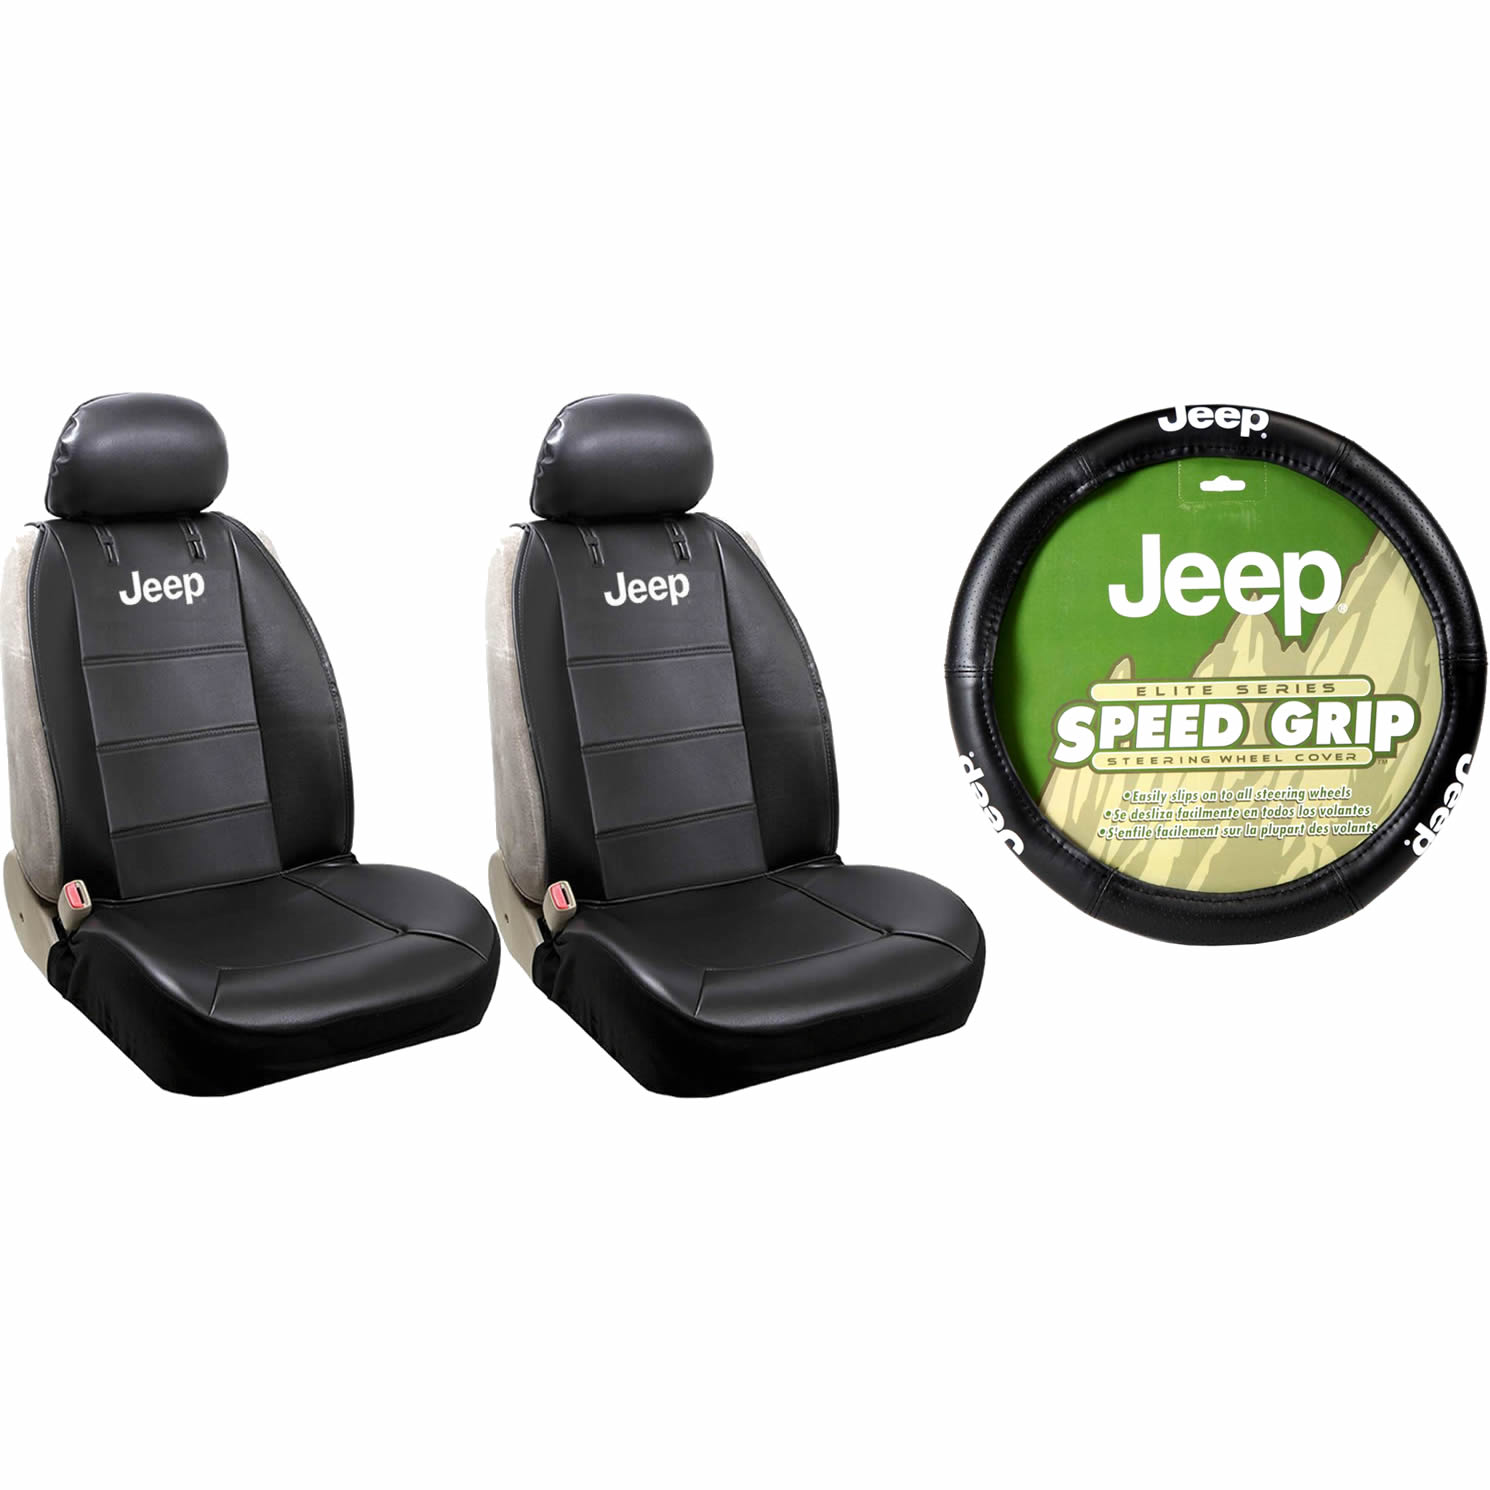 2 Jeep Black Synthetic Leather Sideless Seat Covers & Black Steering Wheel Cover Set Car Truck SUV